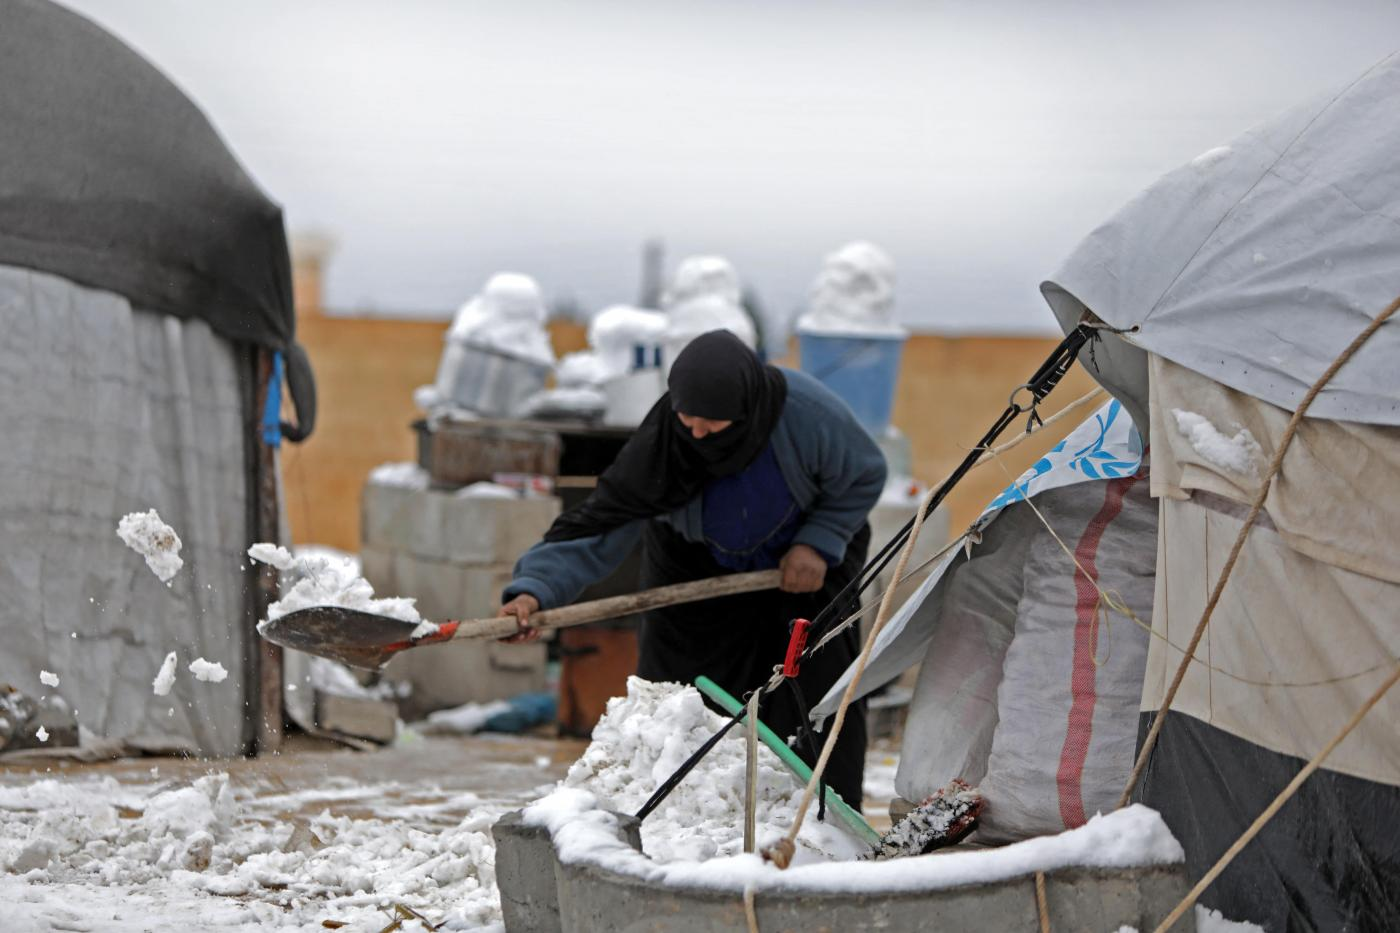 A woman who fled pro-regime forces attacks in northeastern Syria, clears the snow in front of a tent at camp for displaced people in the northern Syrian town of Tal Abyad by the border with Turkey, on February 13, 2020. (Bakr ALKASEM/AFP)